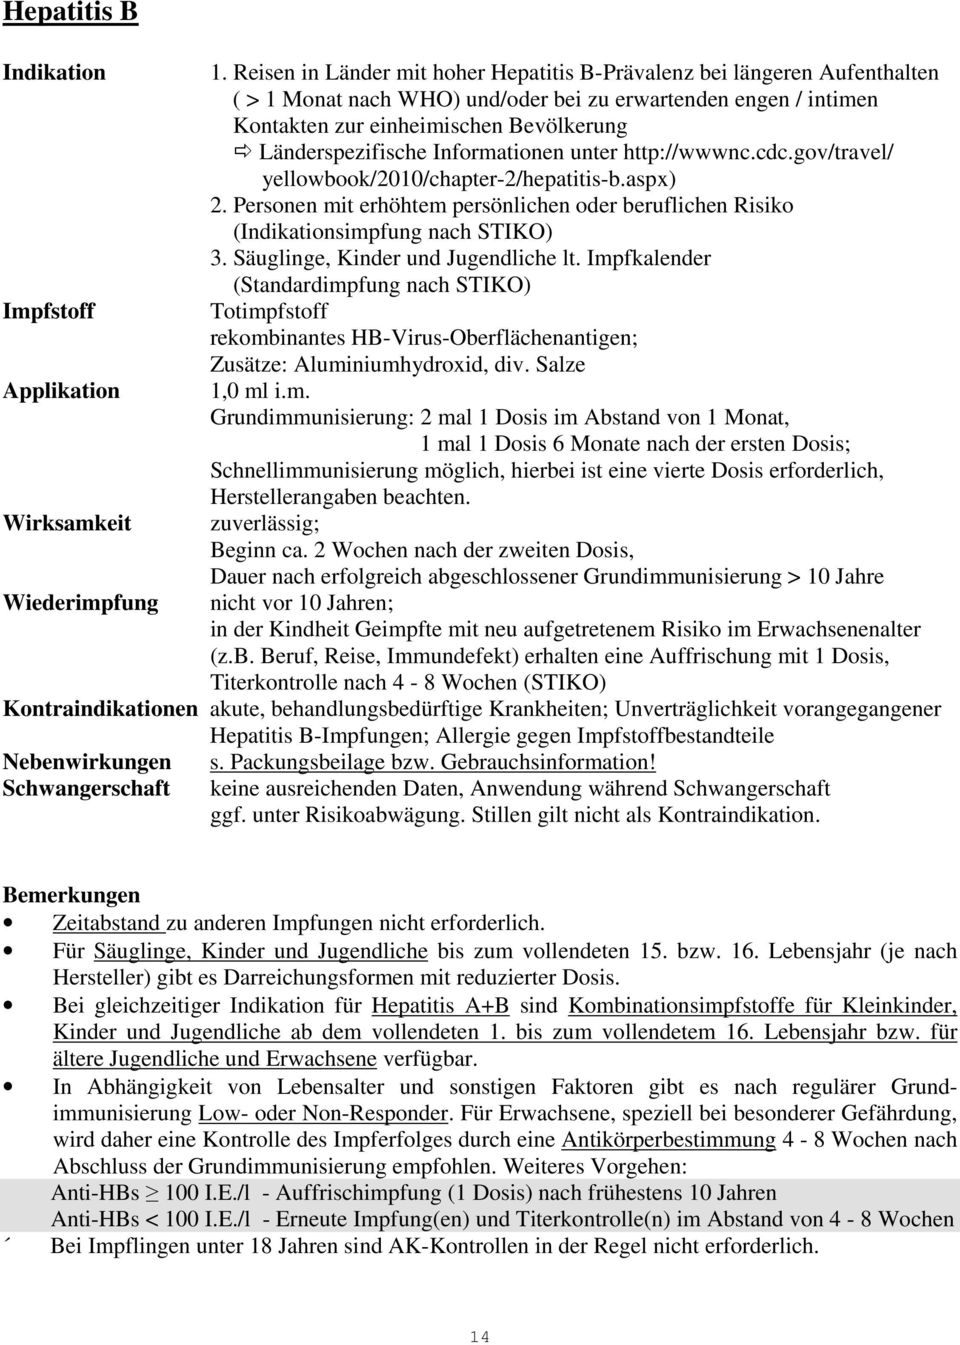 Informationen unter http://wwwnc.cdc.gov/travel/ yellowbook/2010/chapter-2/hepatitis-b.aspx) 2. Personen mit erhöhtem persönlichen oder beruflichen Risiko (Indikationsimpfung nach STIKO) 3.